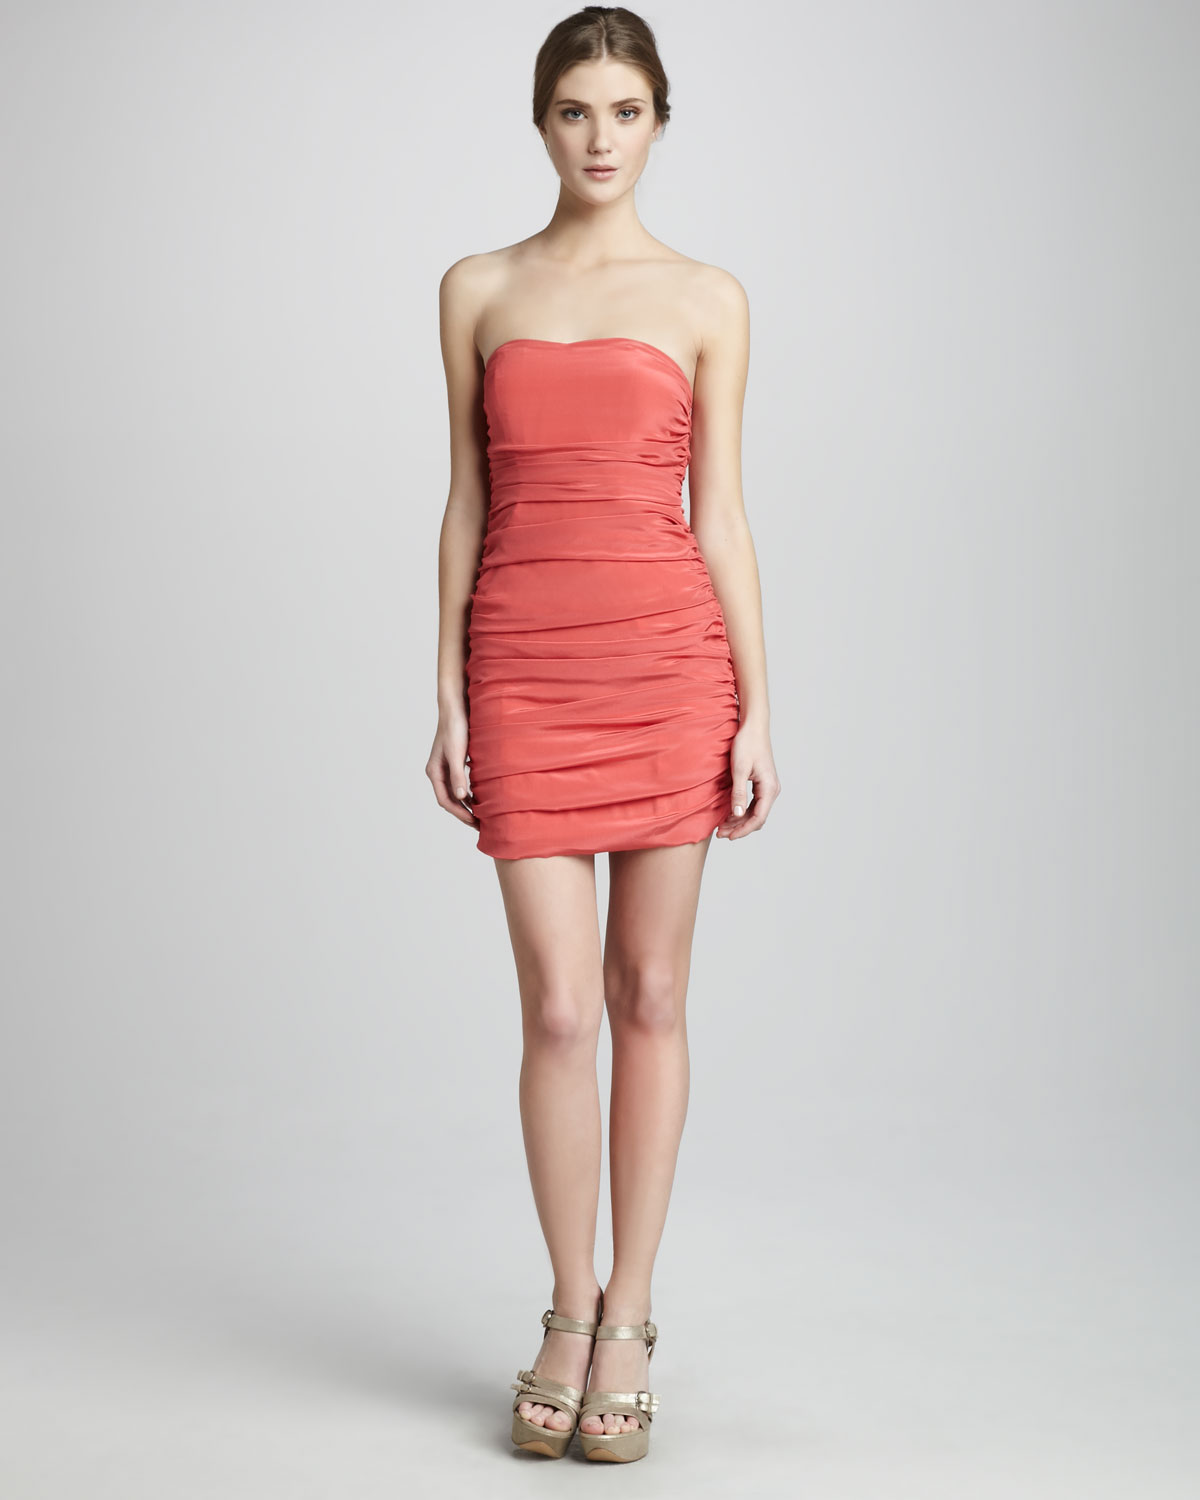 Jay godfrey Weldon Fitted Cocktail Dress in Pink  Lyst